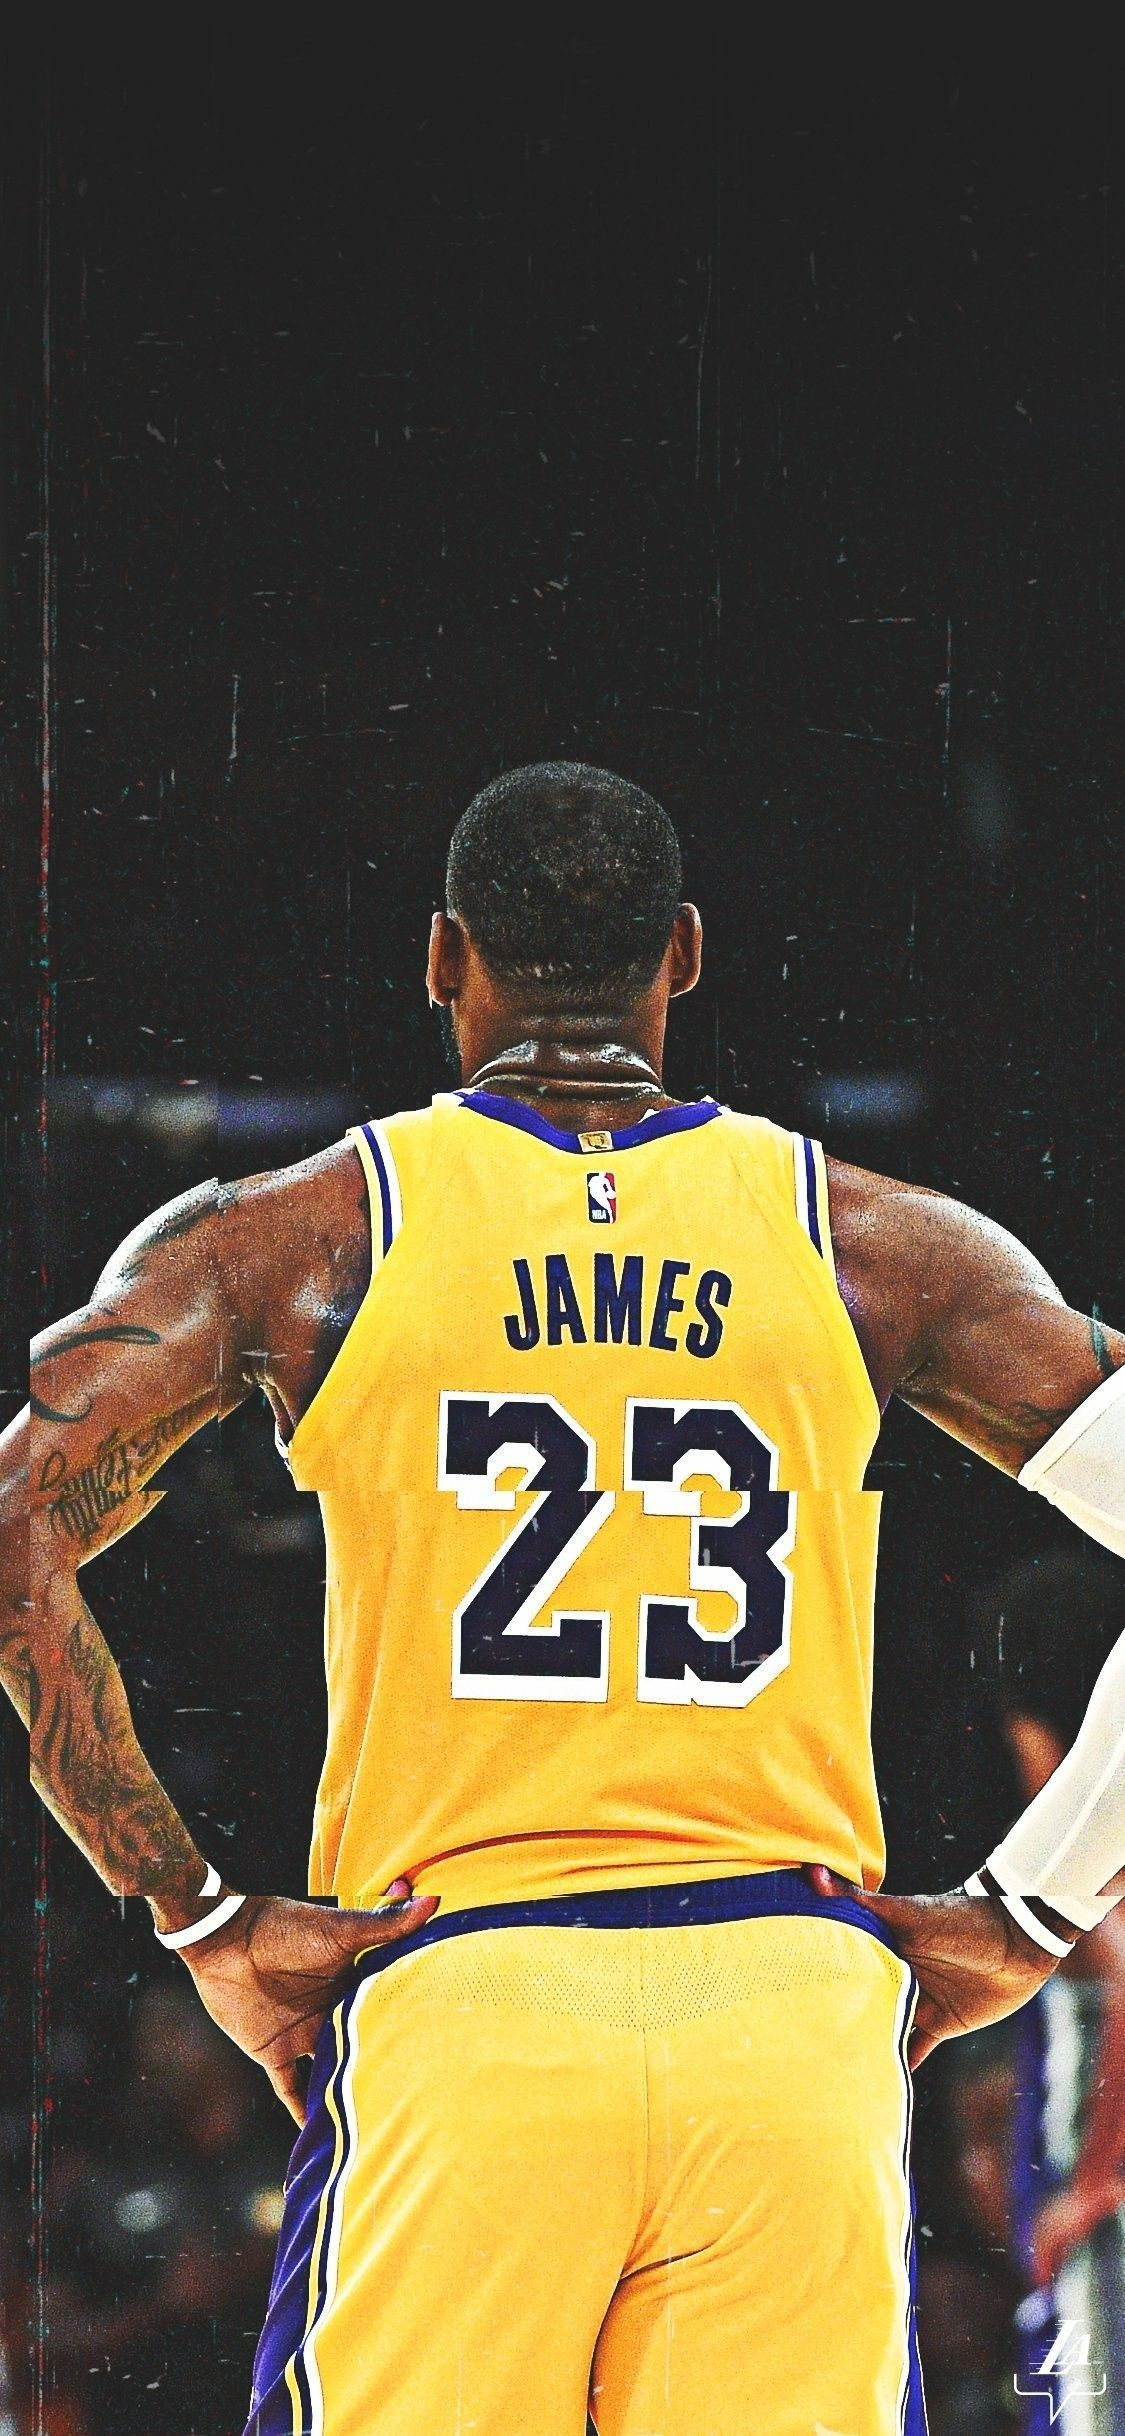 Awesome Lebron James Lakers Wallpaper In 2020 Lebron James Lakers Lebron James Wallpapers Nba Lebron James